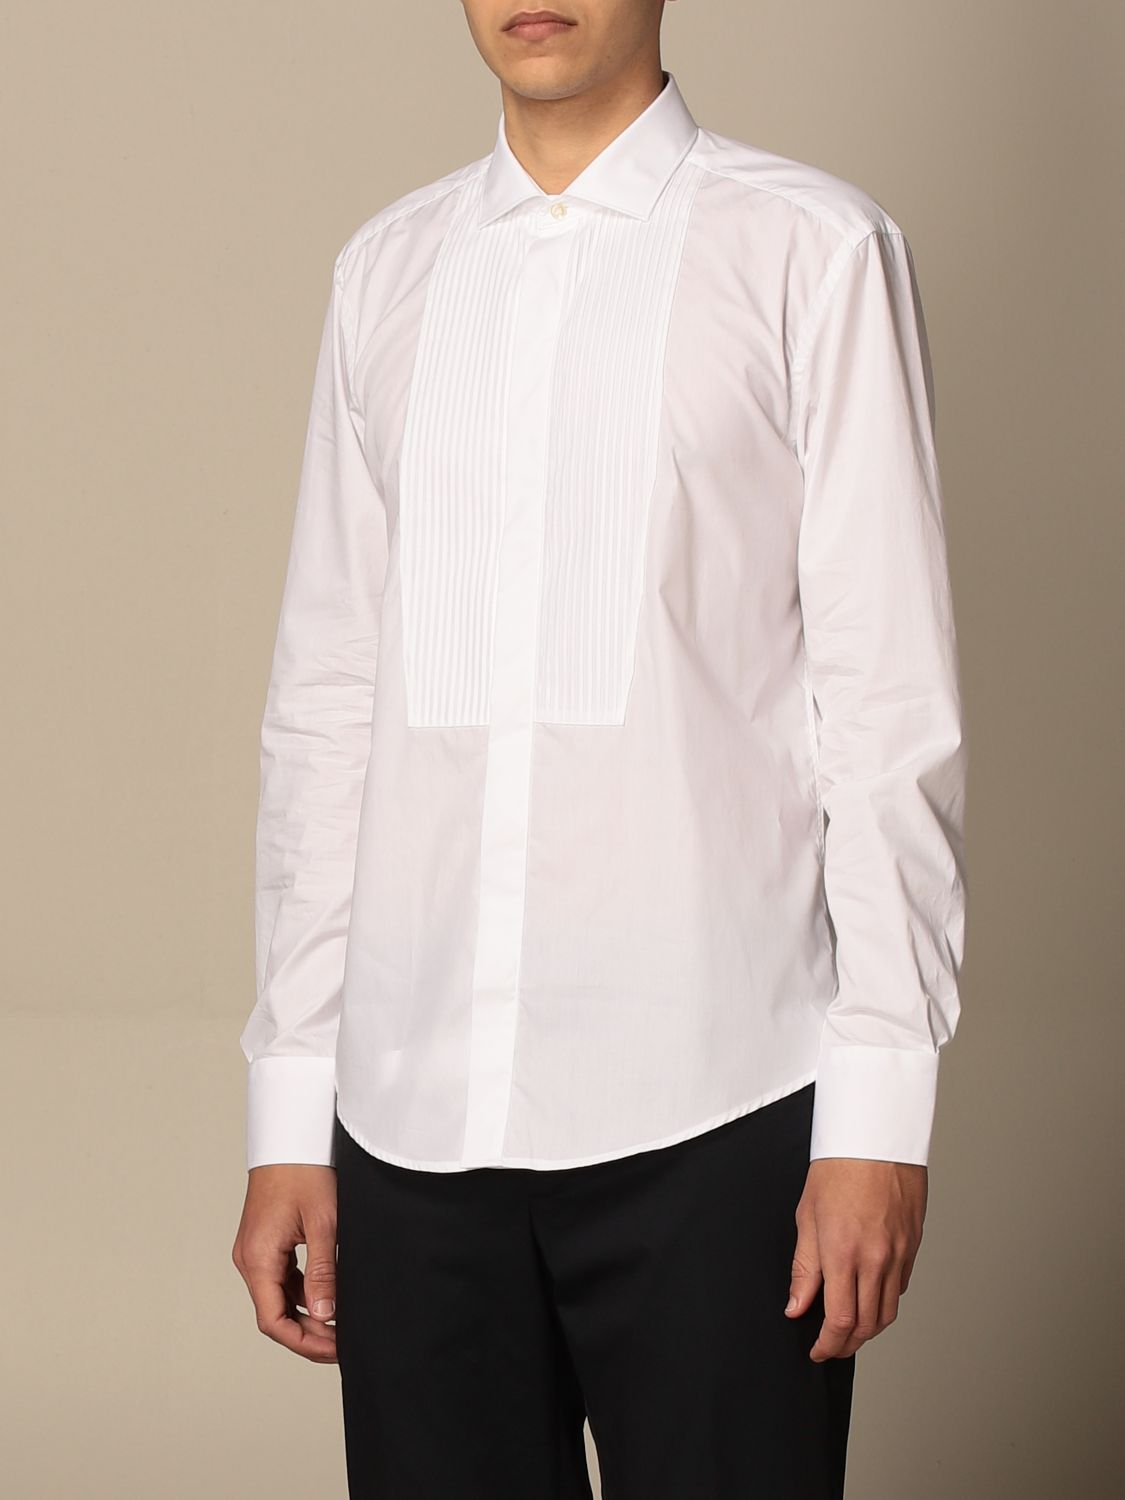 Chemise Brian Dales Chemises: Chemise homme Brian Dales Camicie blanc 3